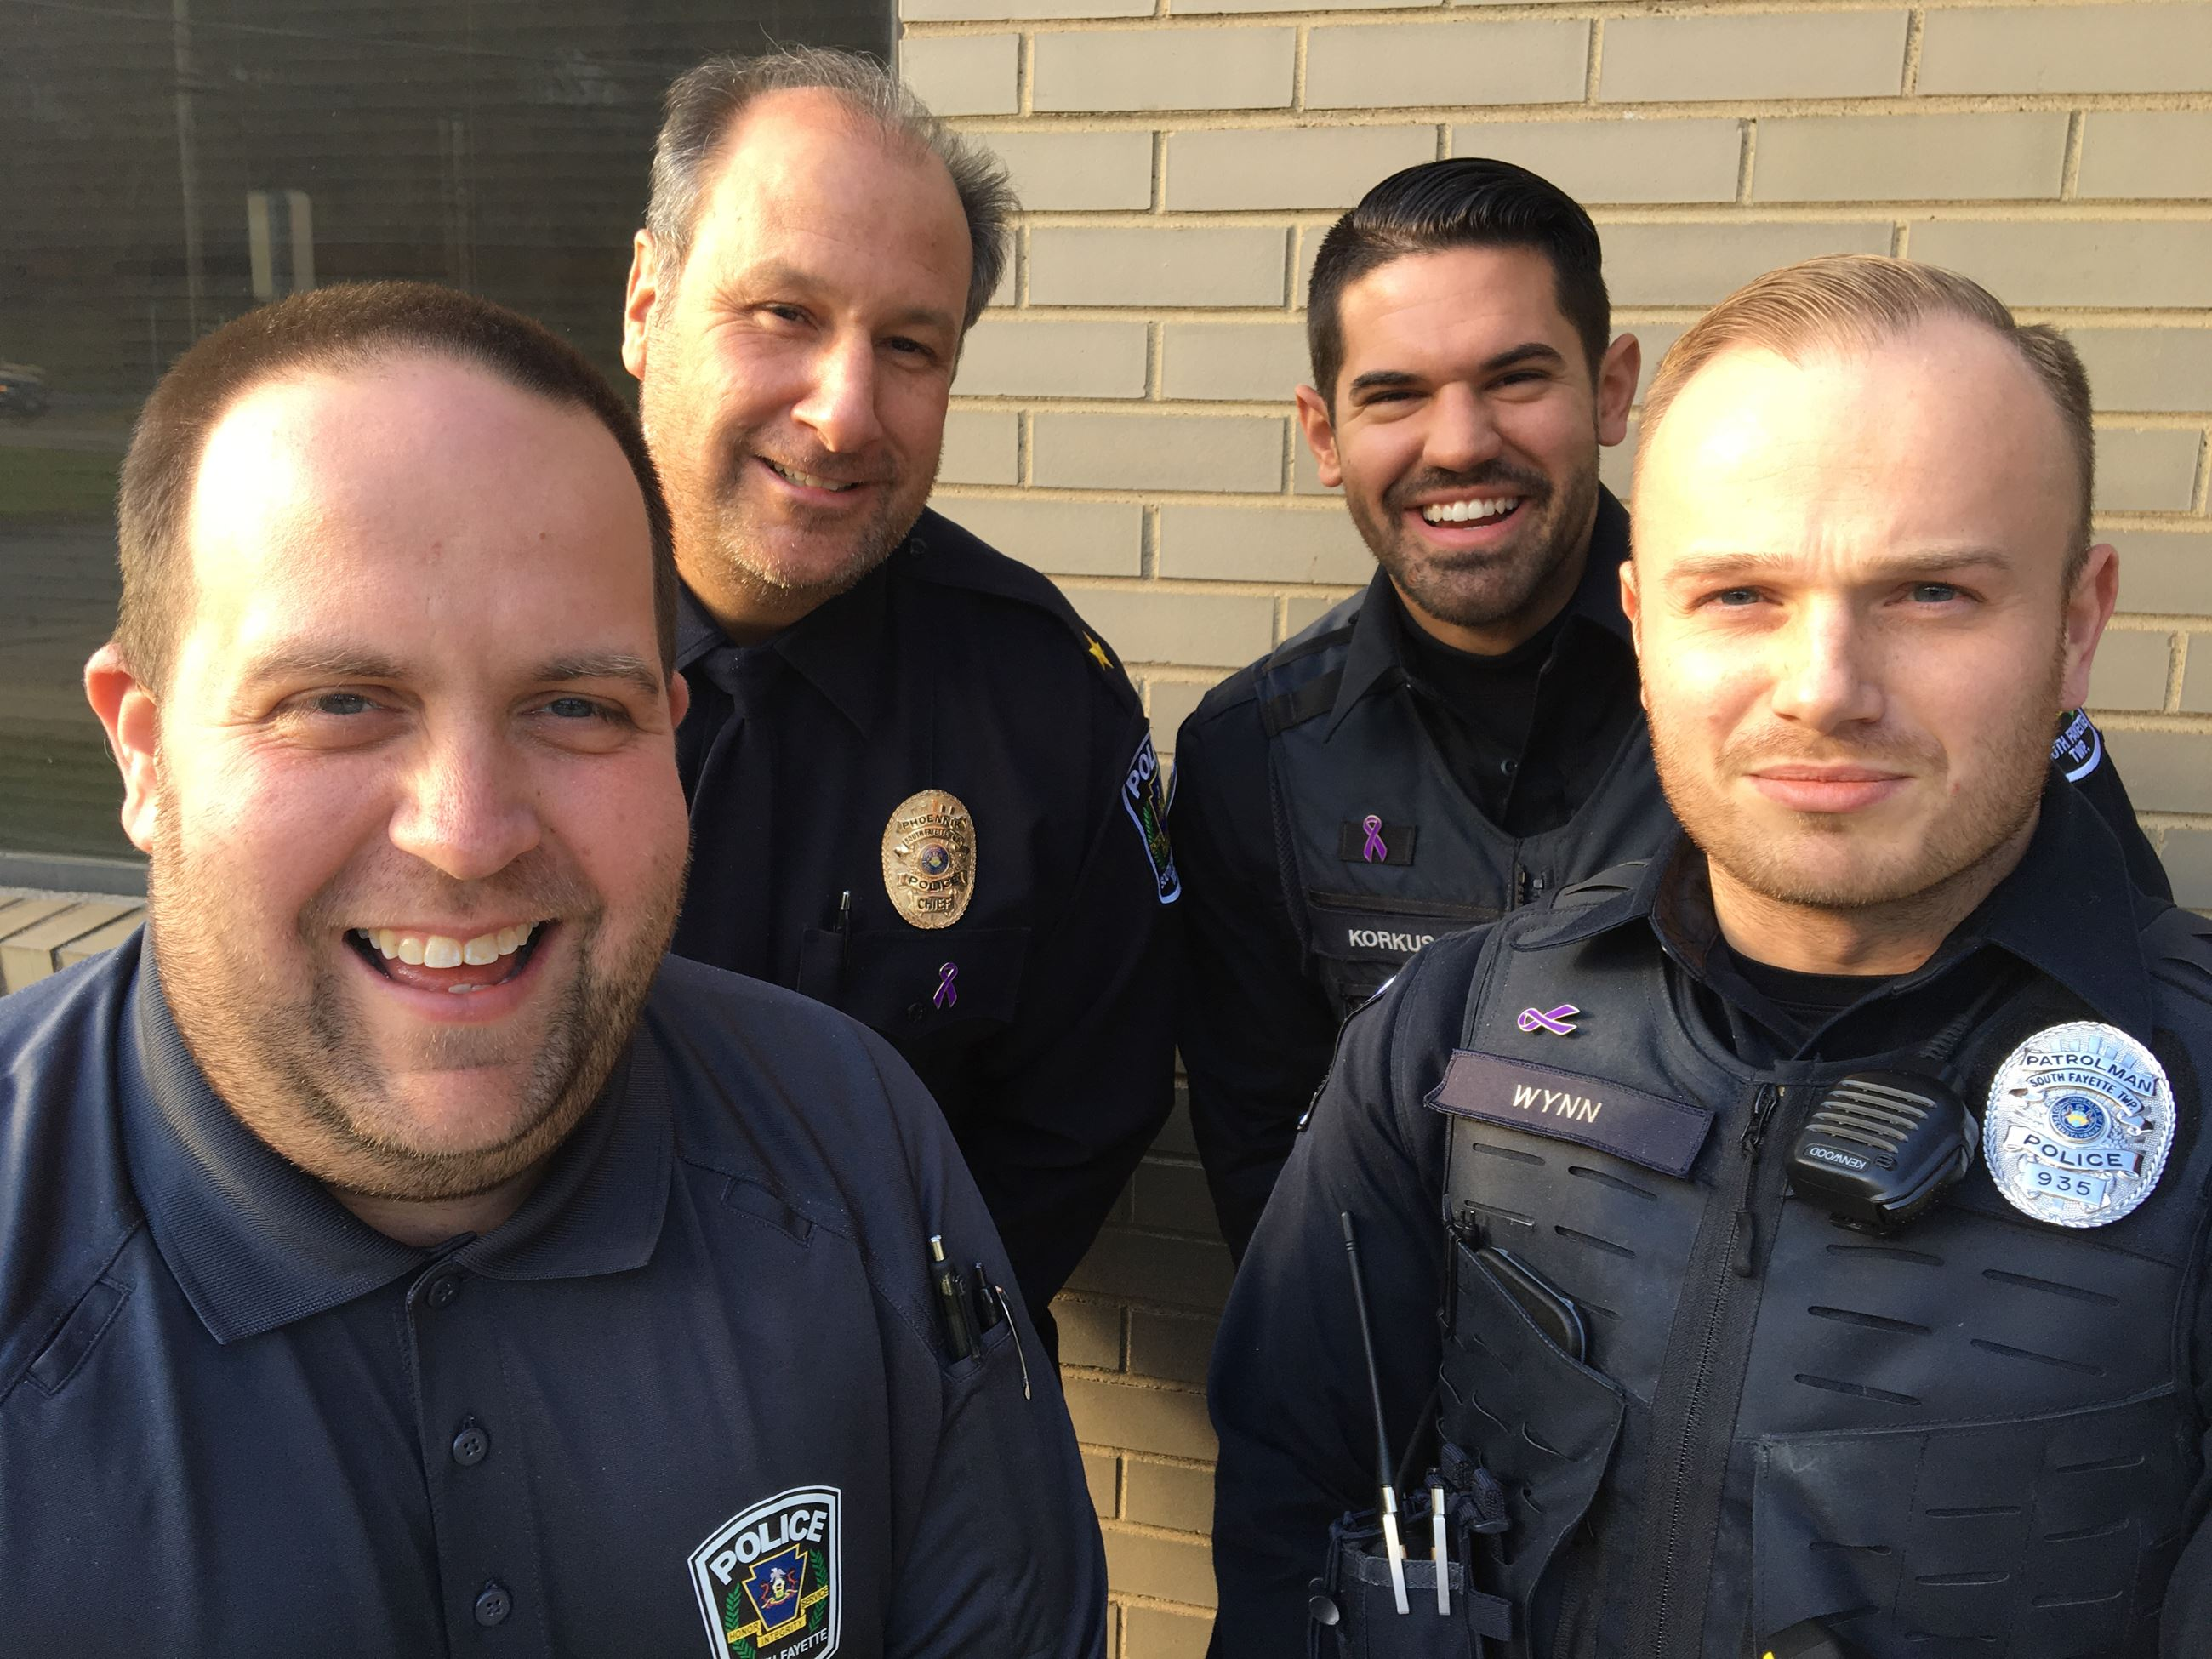 Four police officers growing beards